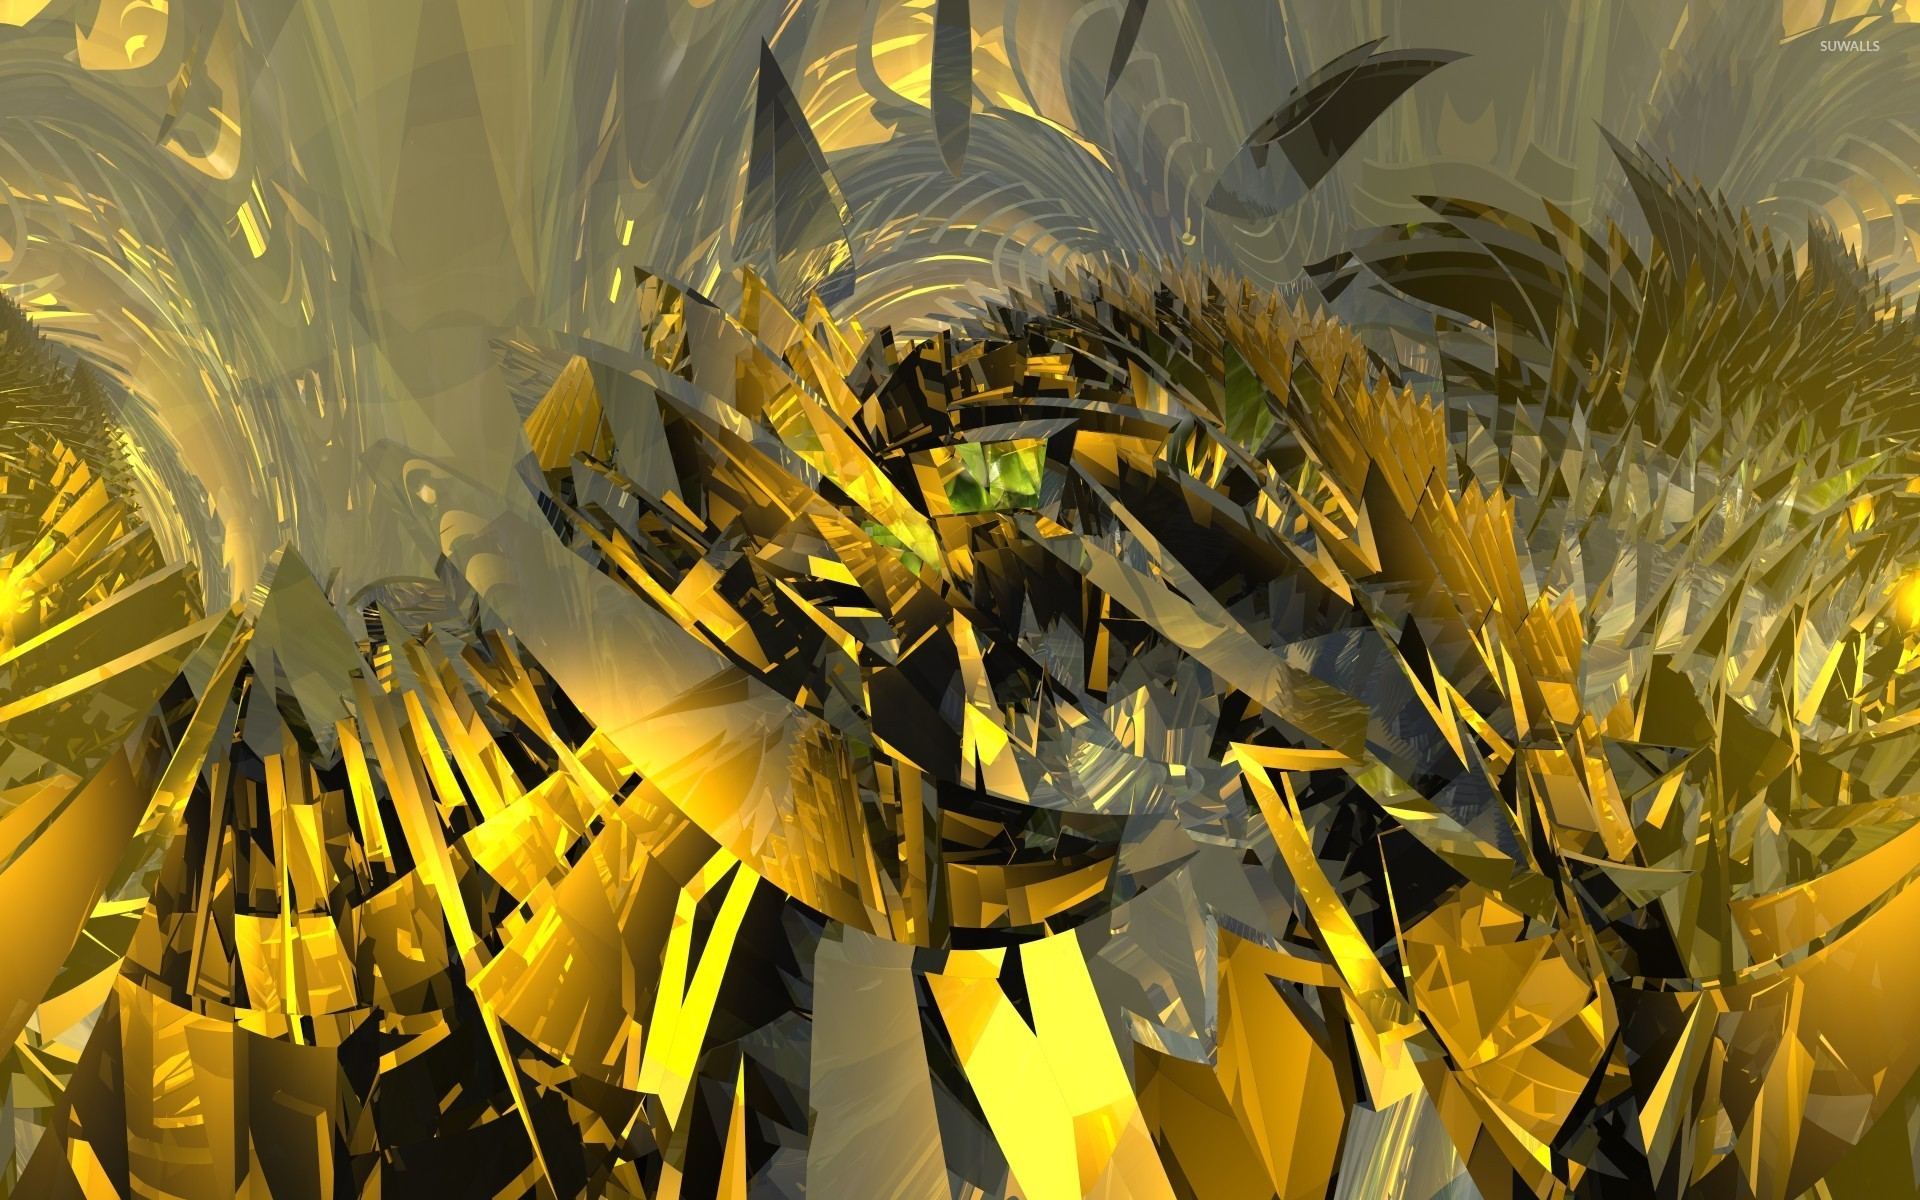 Gold shards wallpaper 3d wallpapers 24347 for Gold 3d wallpaper